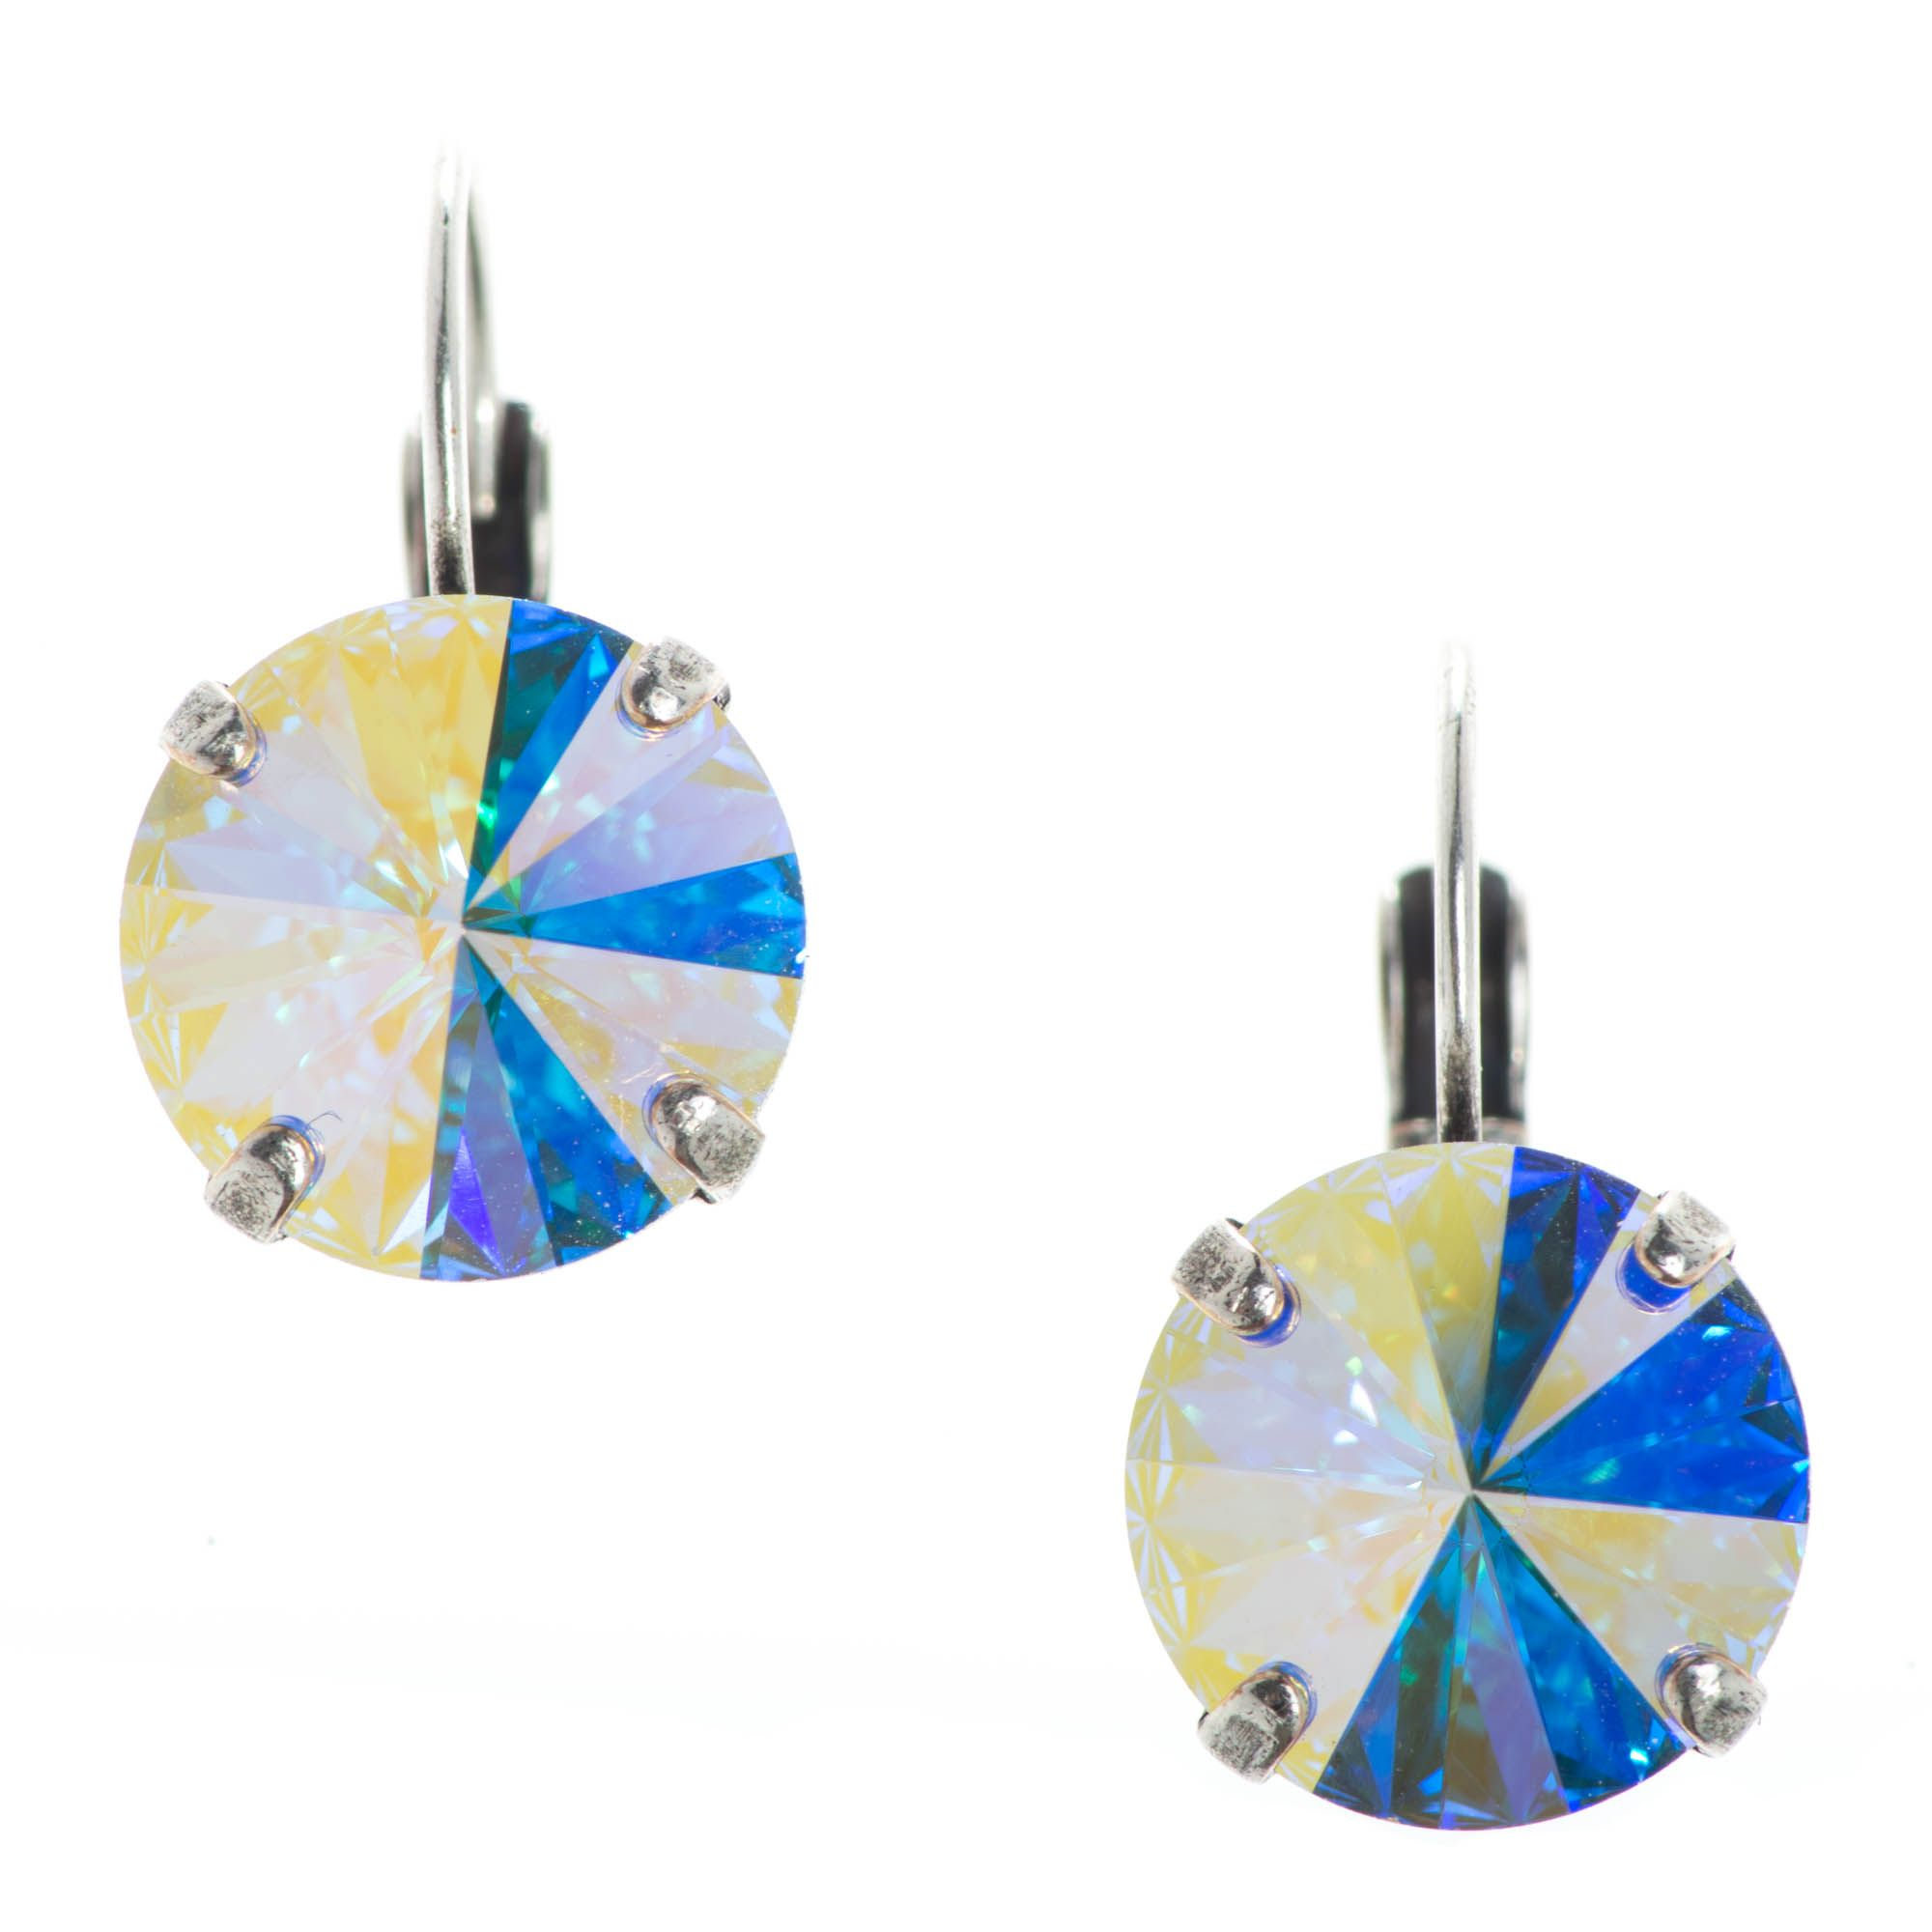 Ypmco 12mm Aurora Borealis Rivoli Swarovski Crystal Earrings